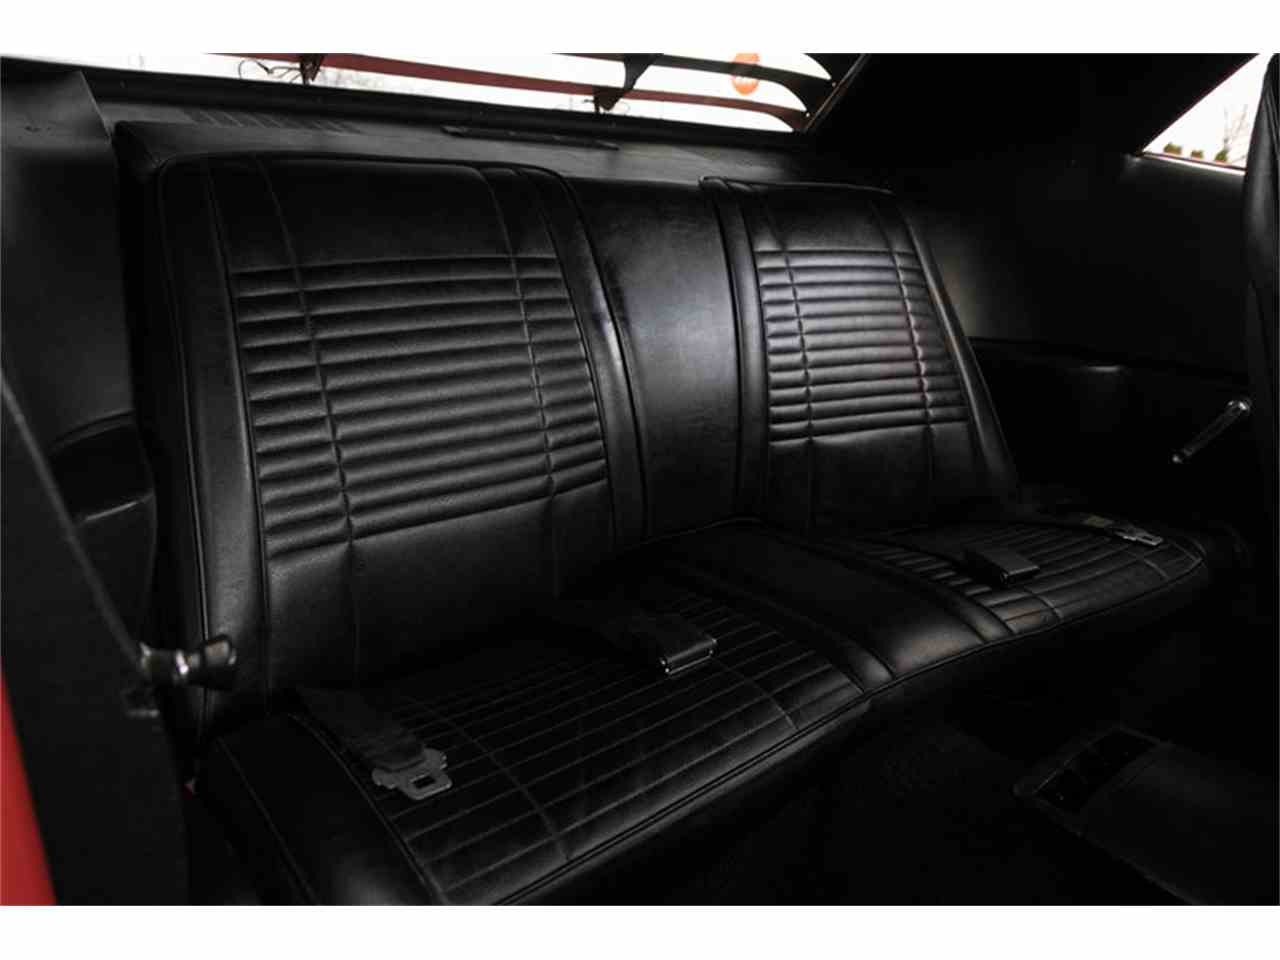 Large Picture of 1970 Dodge Challenger R/T located in St. Charles Missouri - $89,995.00 - MF41